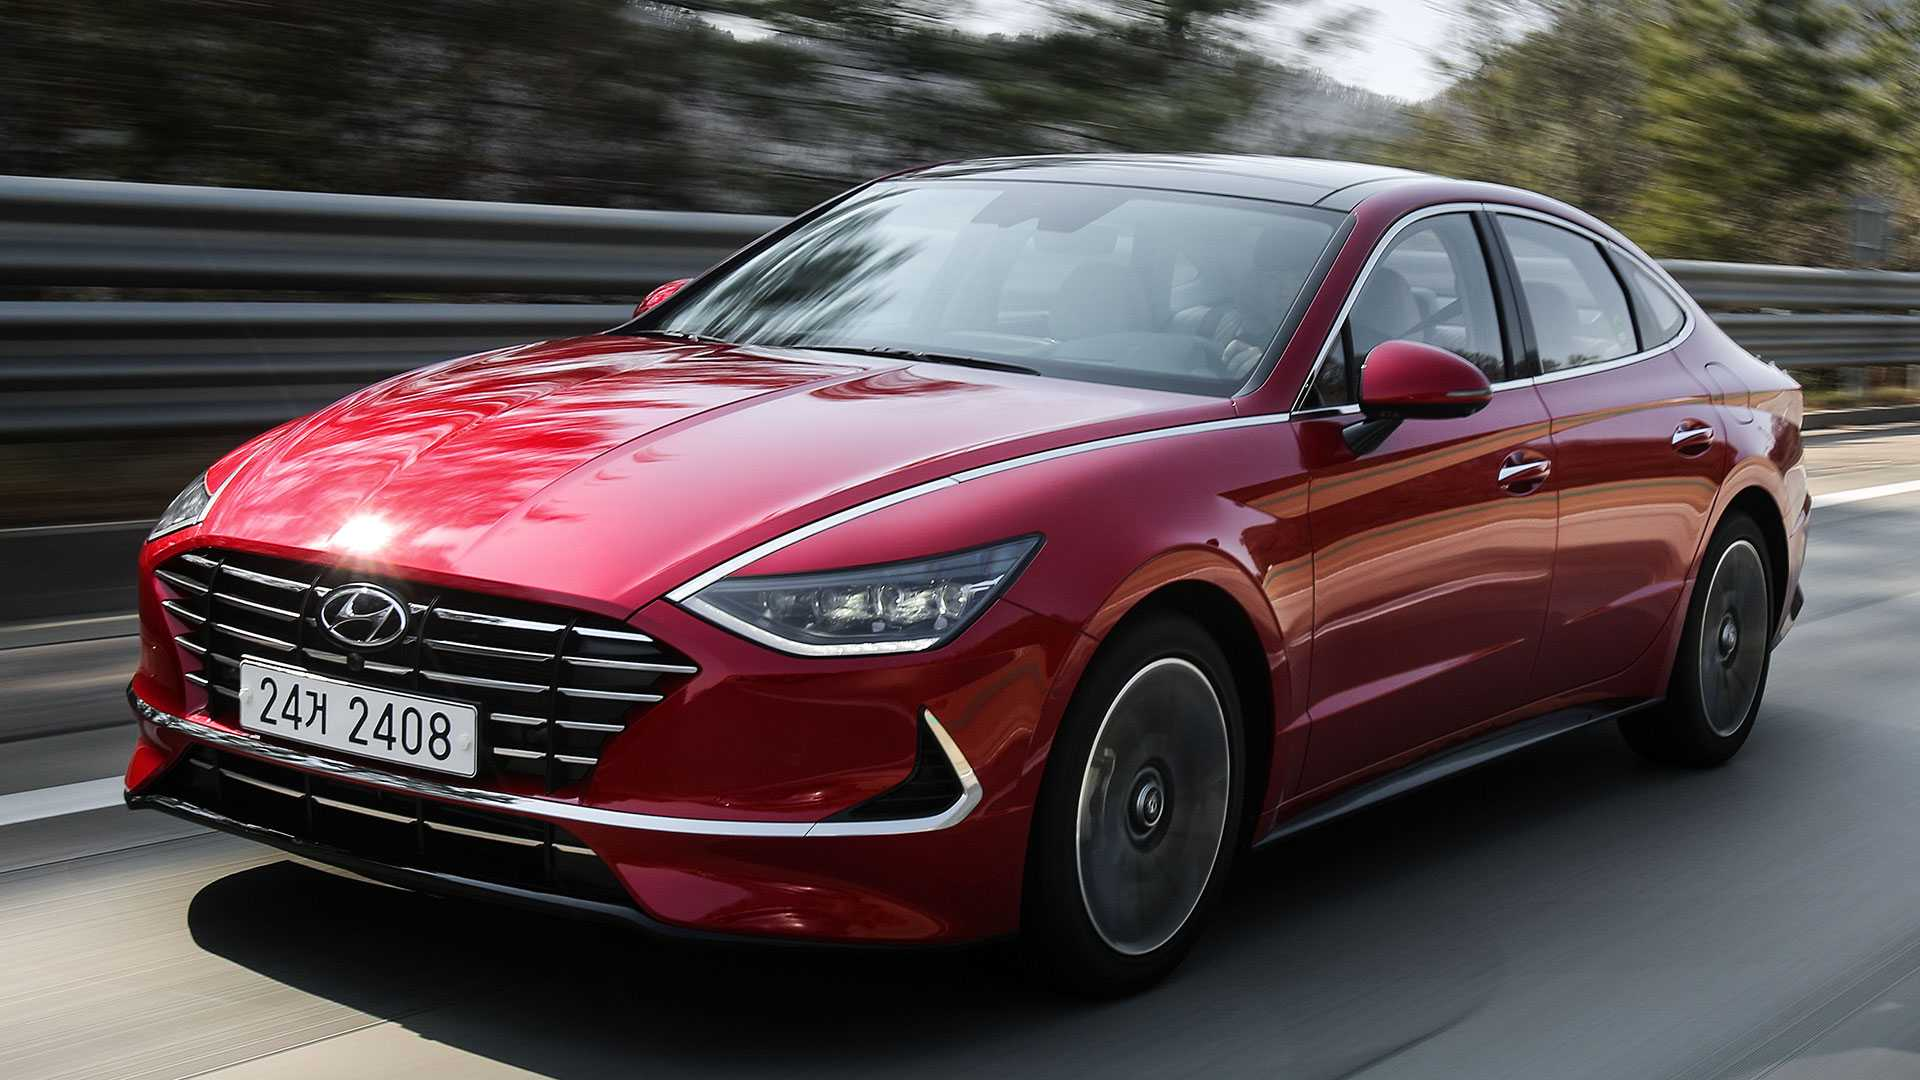 56 The 2020 Hyundai Sonata Engine Options Performance And New Engine